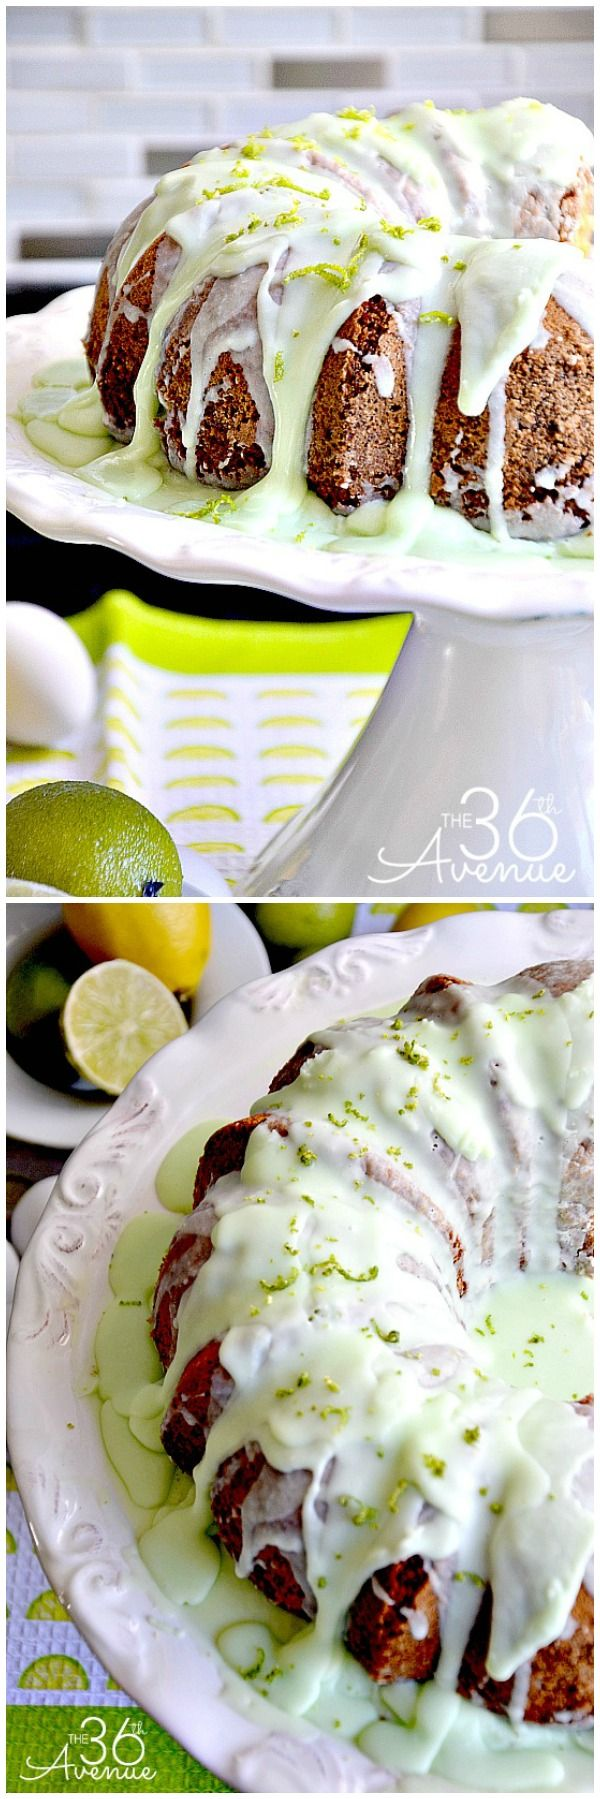 Yummy Key Lime Bundt Cake Recipe... SO DARN GOOD! #recipes